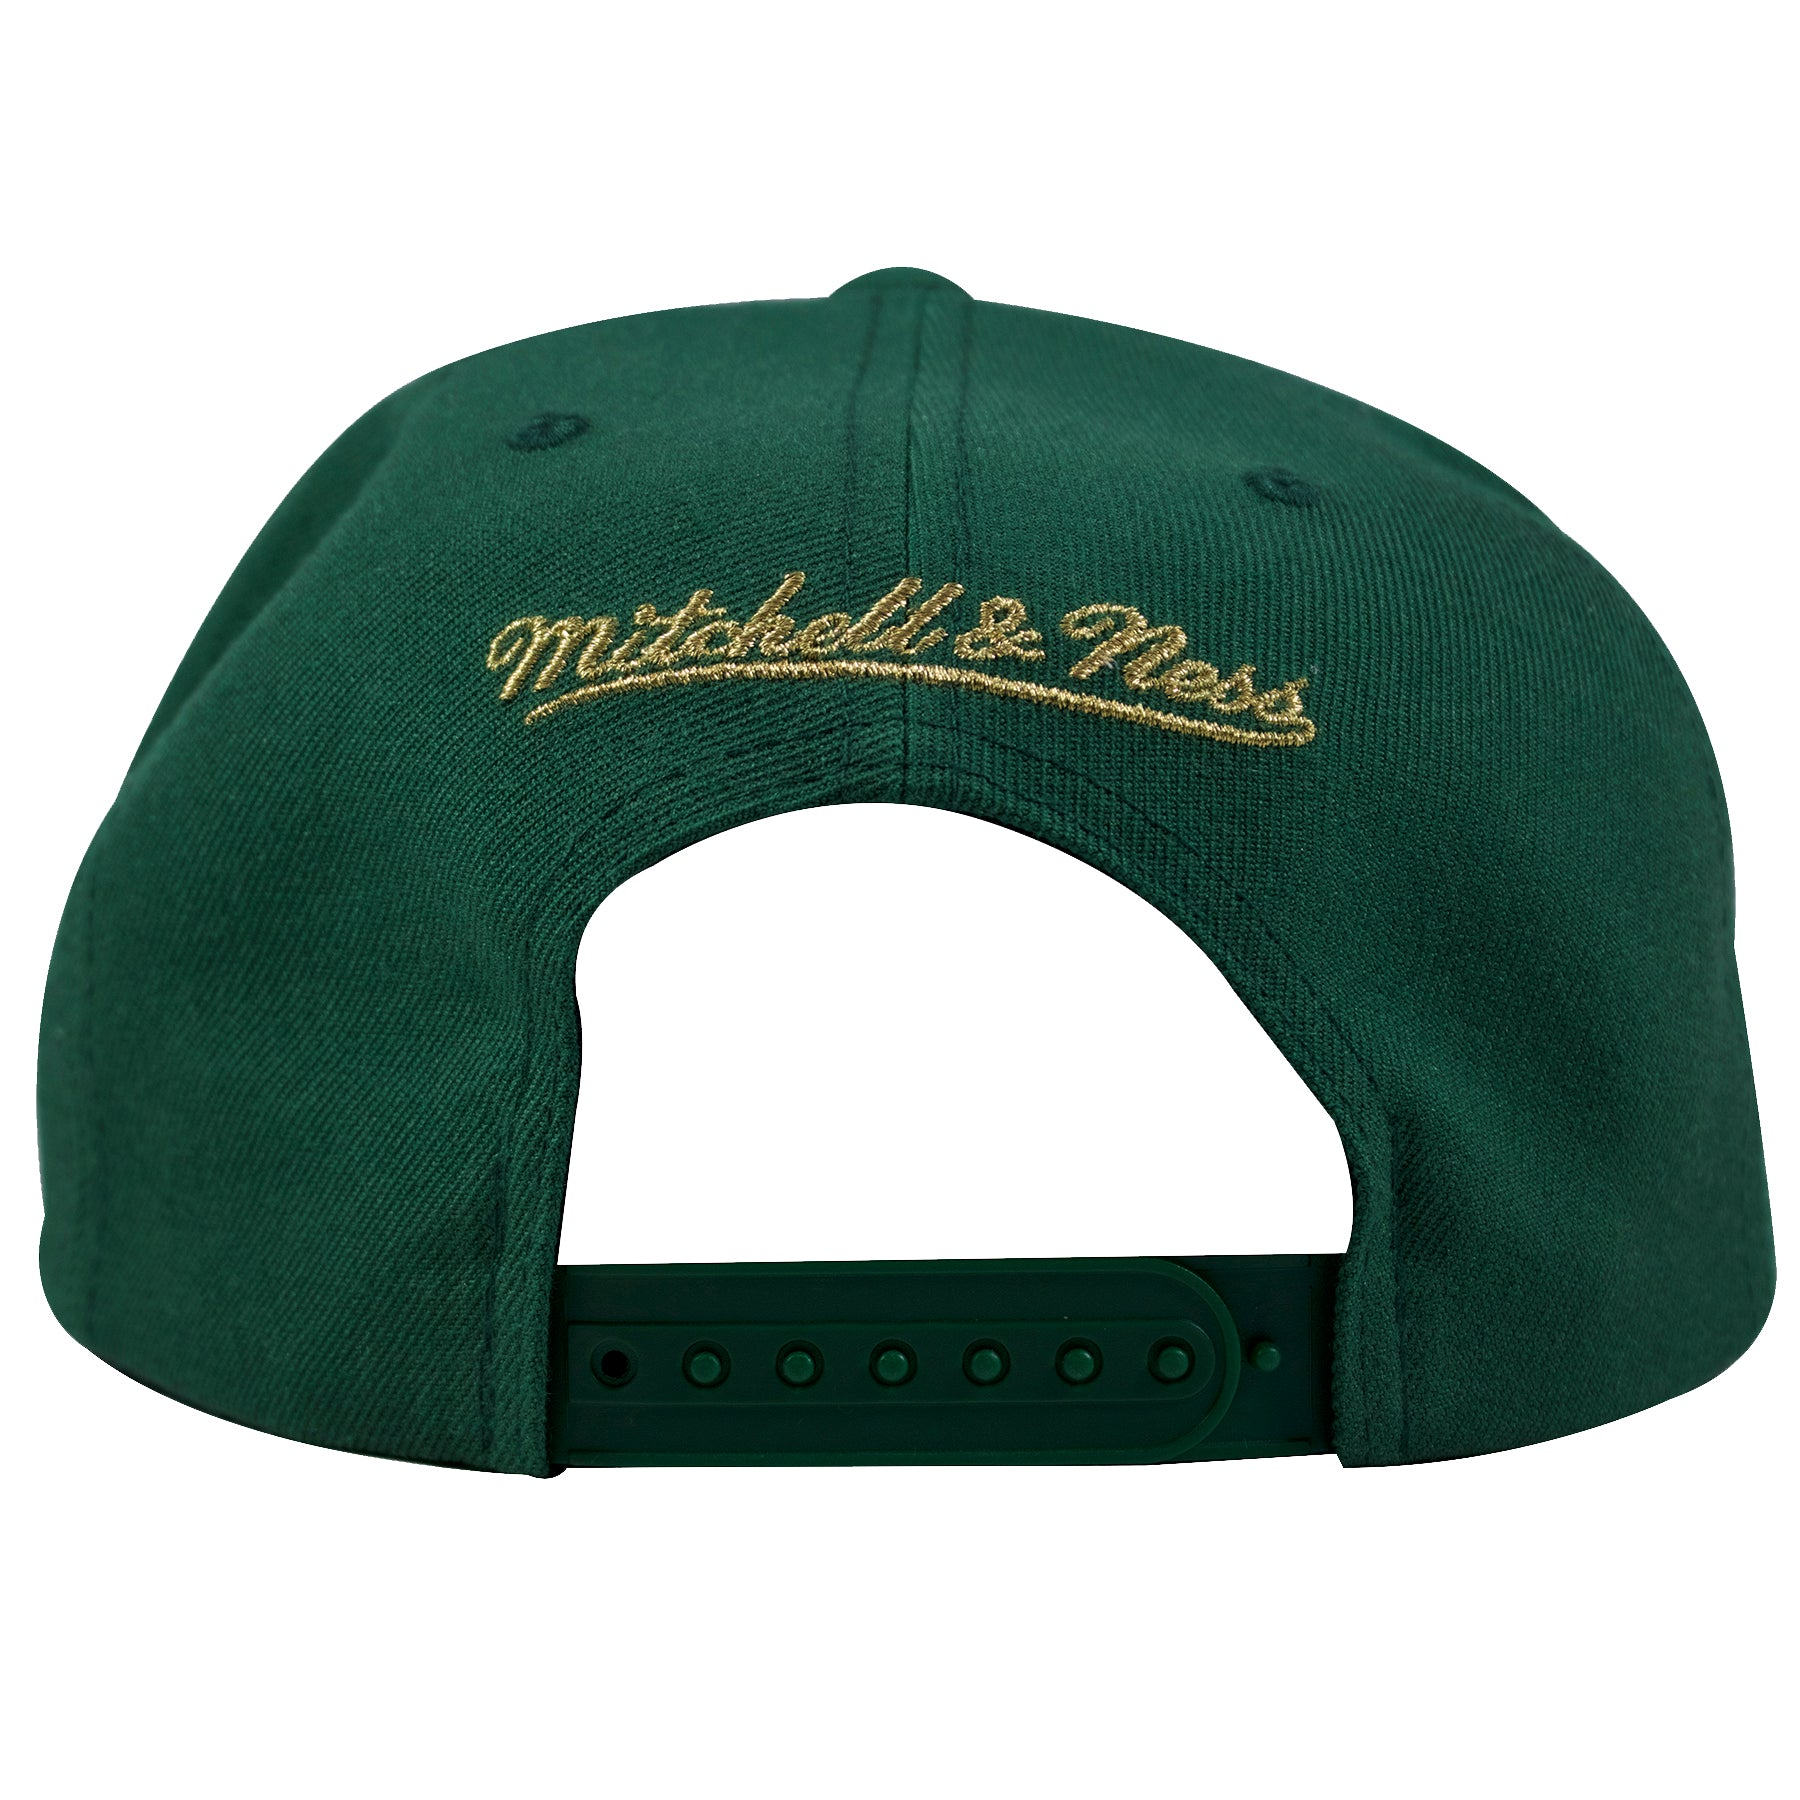 7e211d286c7 ... on the back of the Philadelphia Union irish inspired four leaf clover  snapback hat is the ...